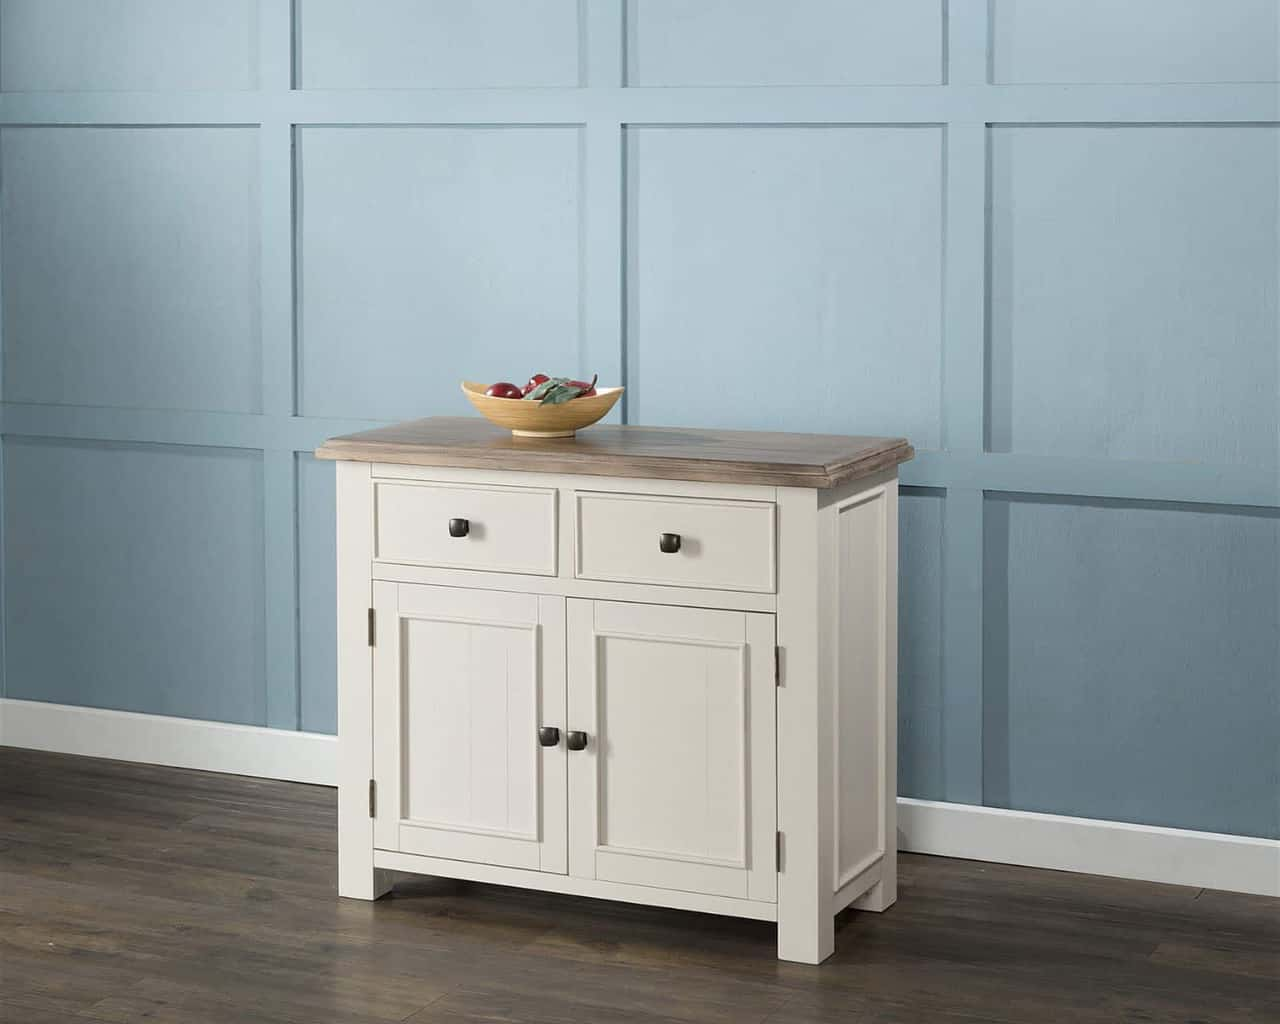 ANTIQUE WHITE PAINTED CHUNKY PINE WOOD MEDIUM SIDEBOARD CUPBOARD CABINET : MSL Furniture